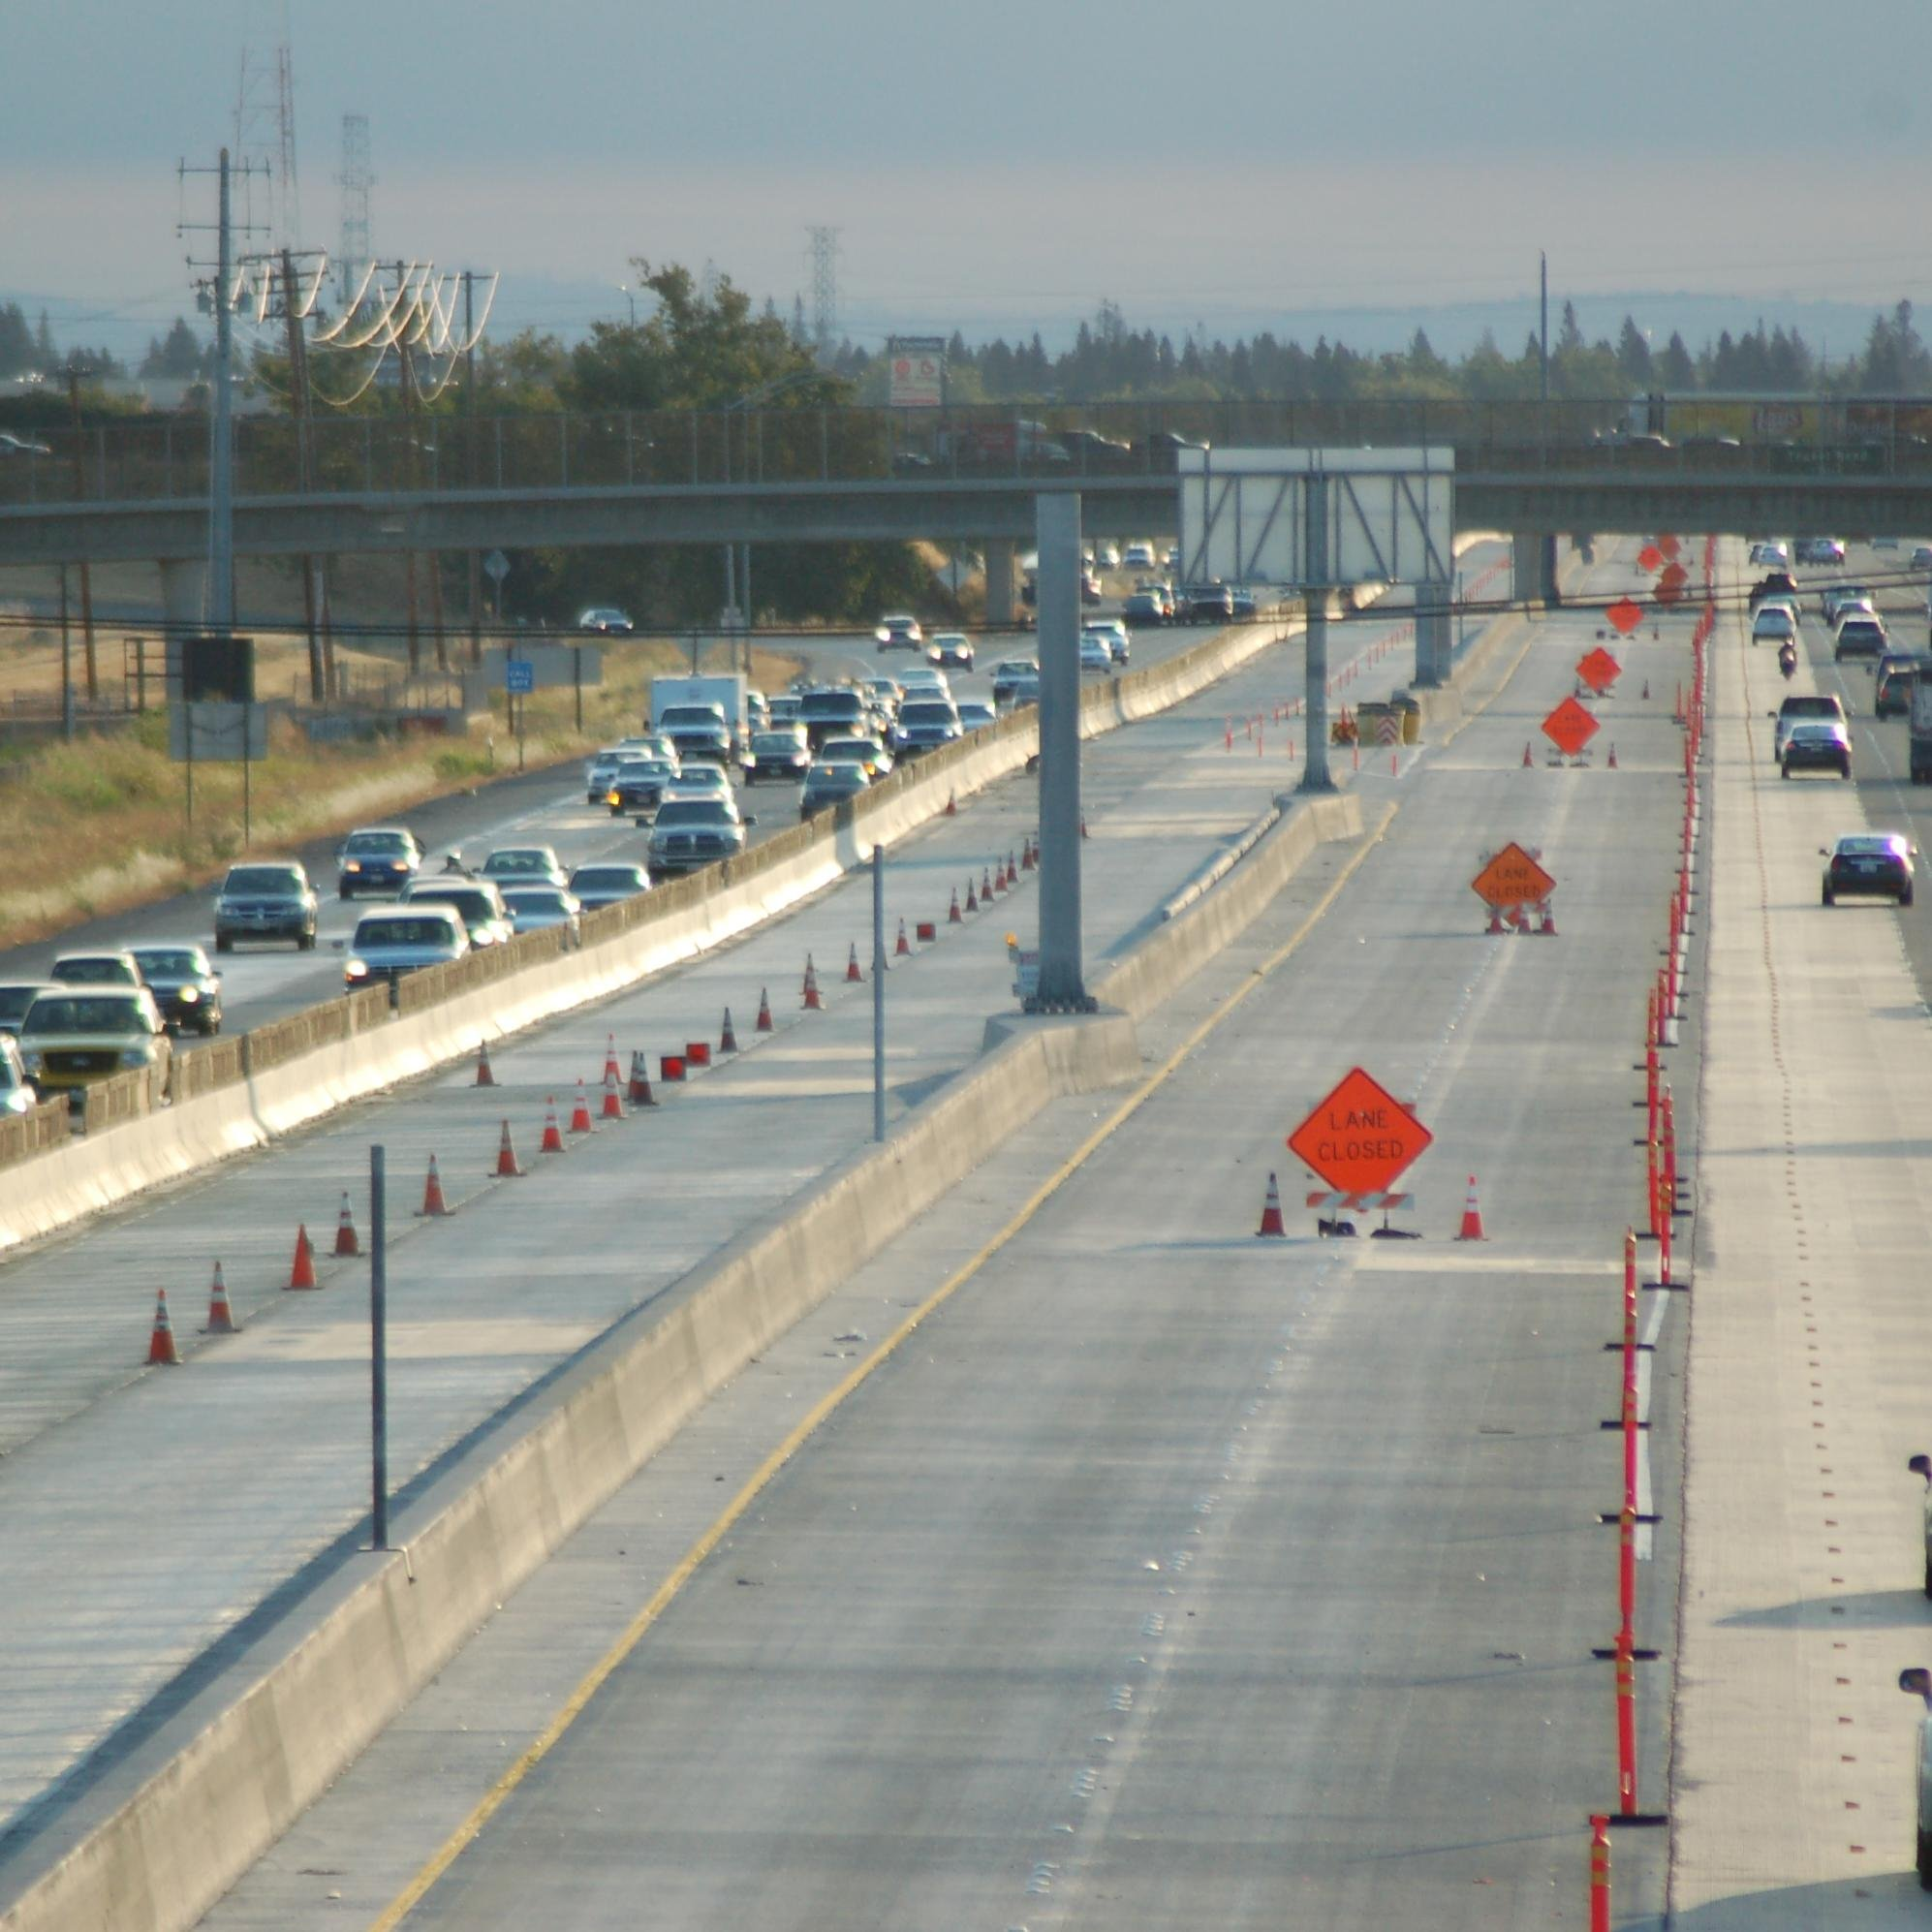 Natomas, CA - Norwood On-Ramp to Eastbound I-80 Closed | The